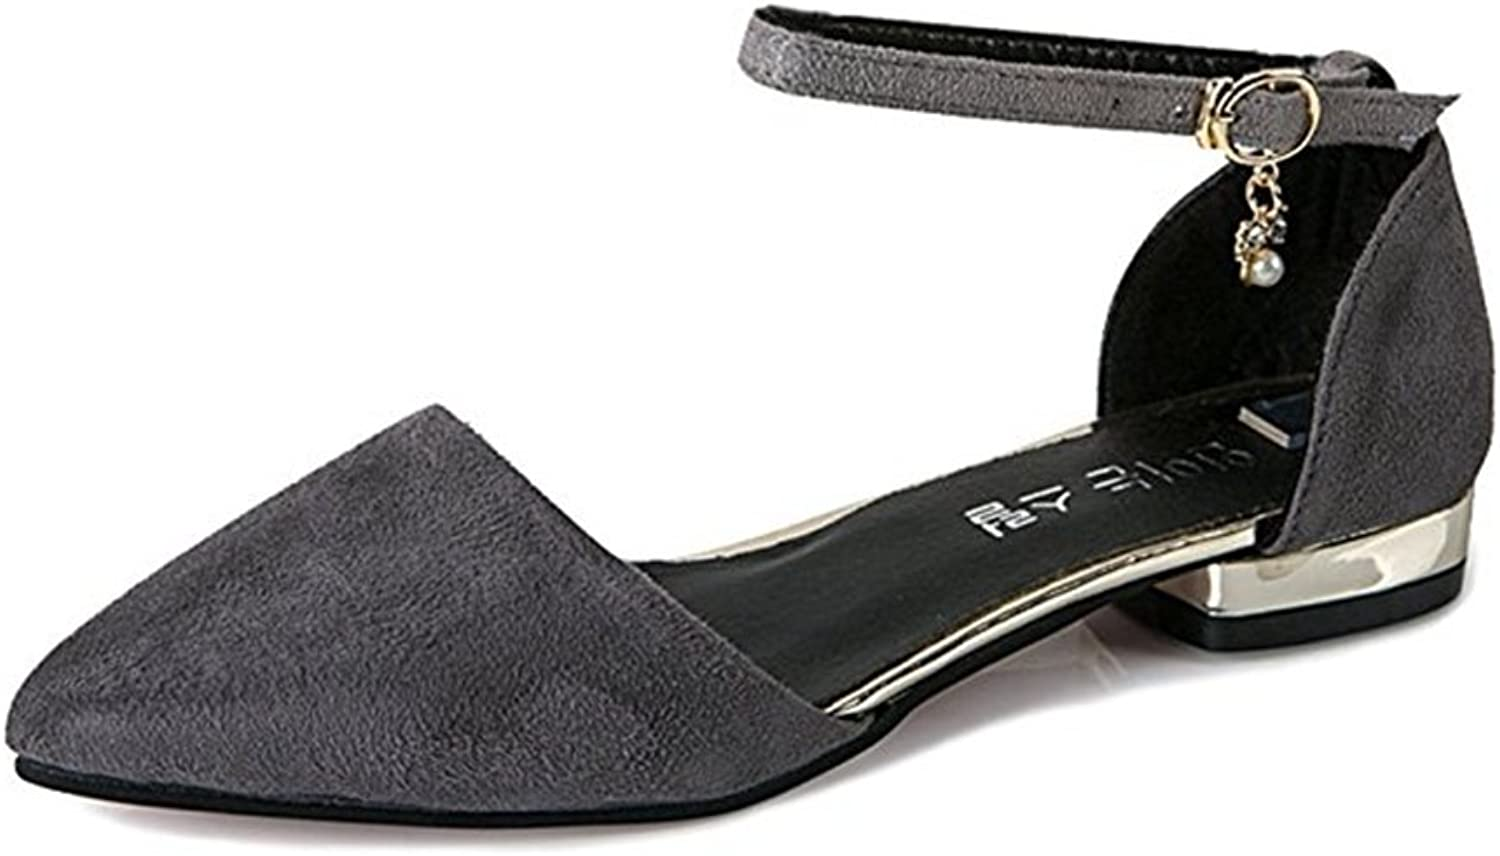 T-JULY Womens Pointed Closed Toe Ankle Strap Buckle with Diamond Chunky Heels Flat Sandals Slip On Dress Pumps shoes